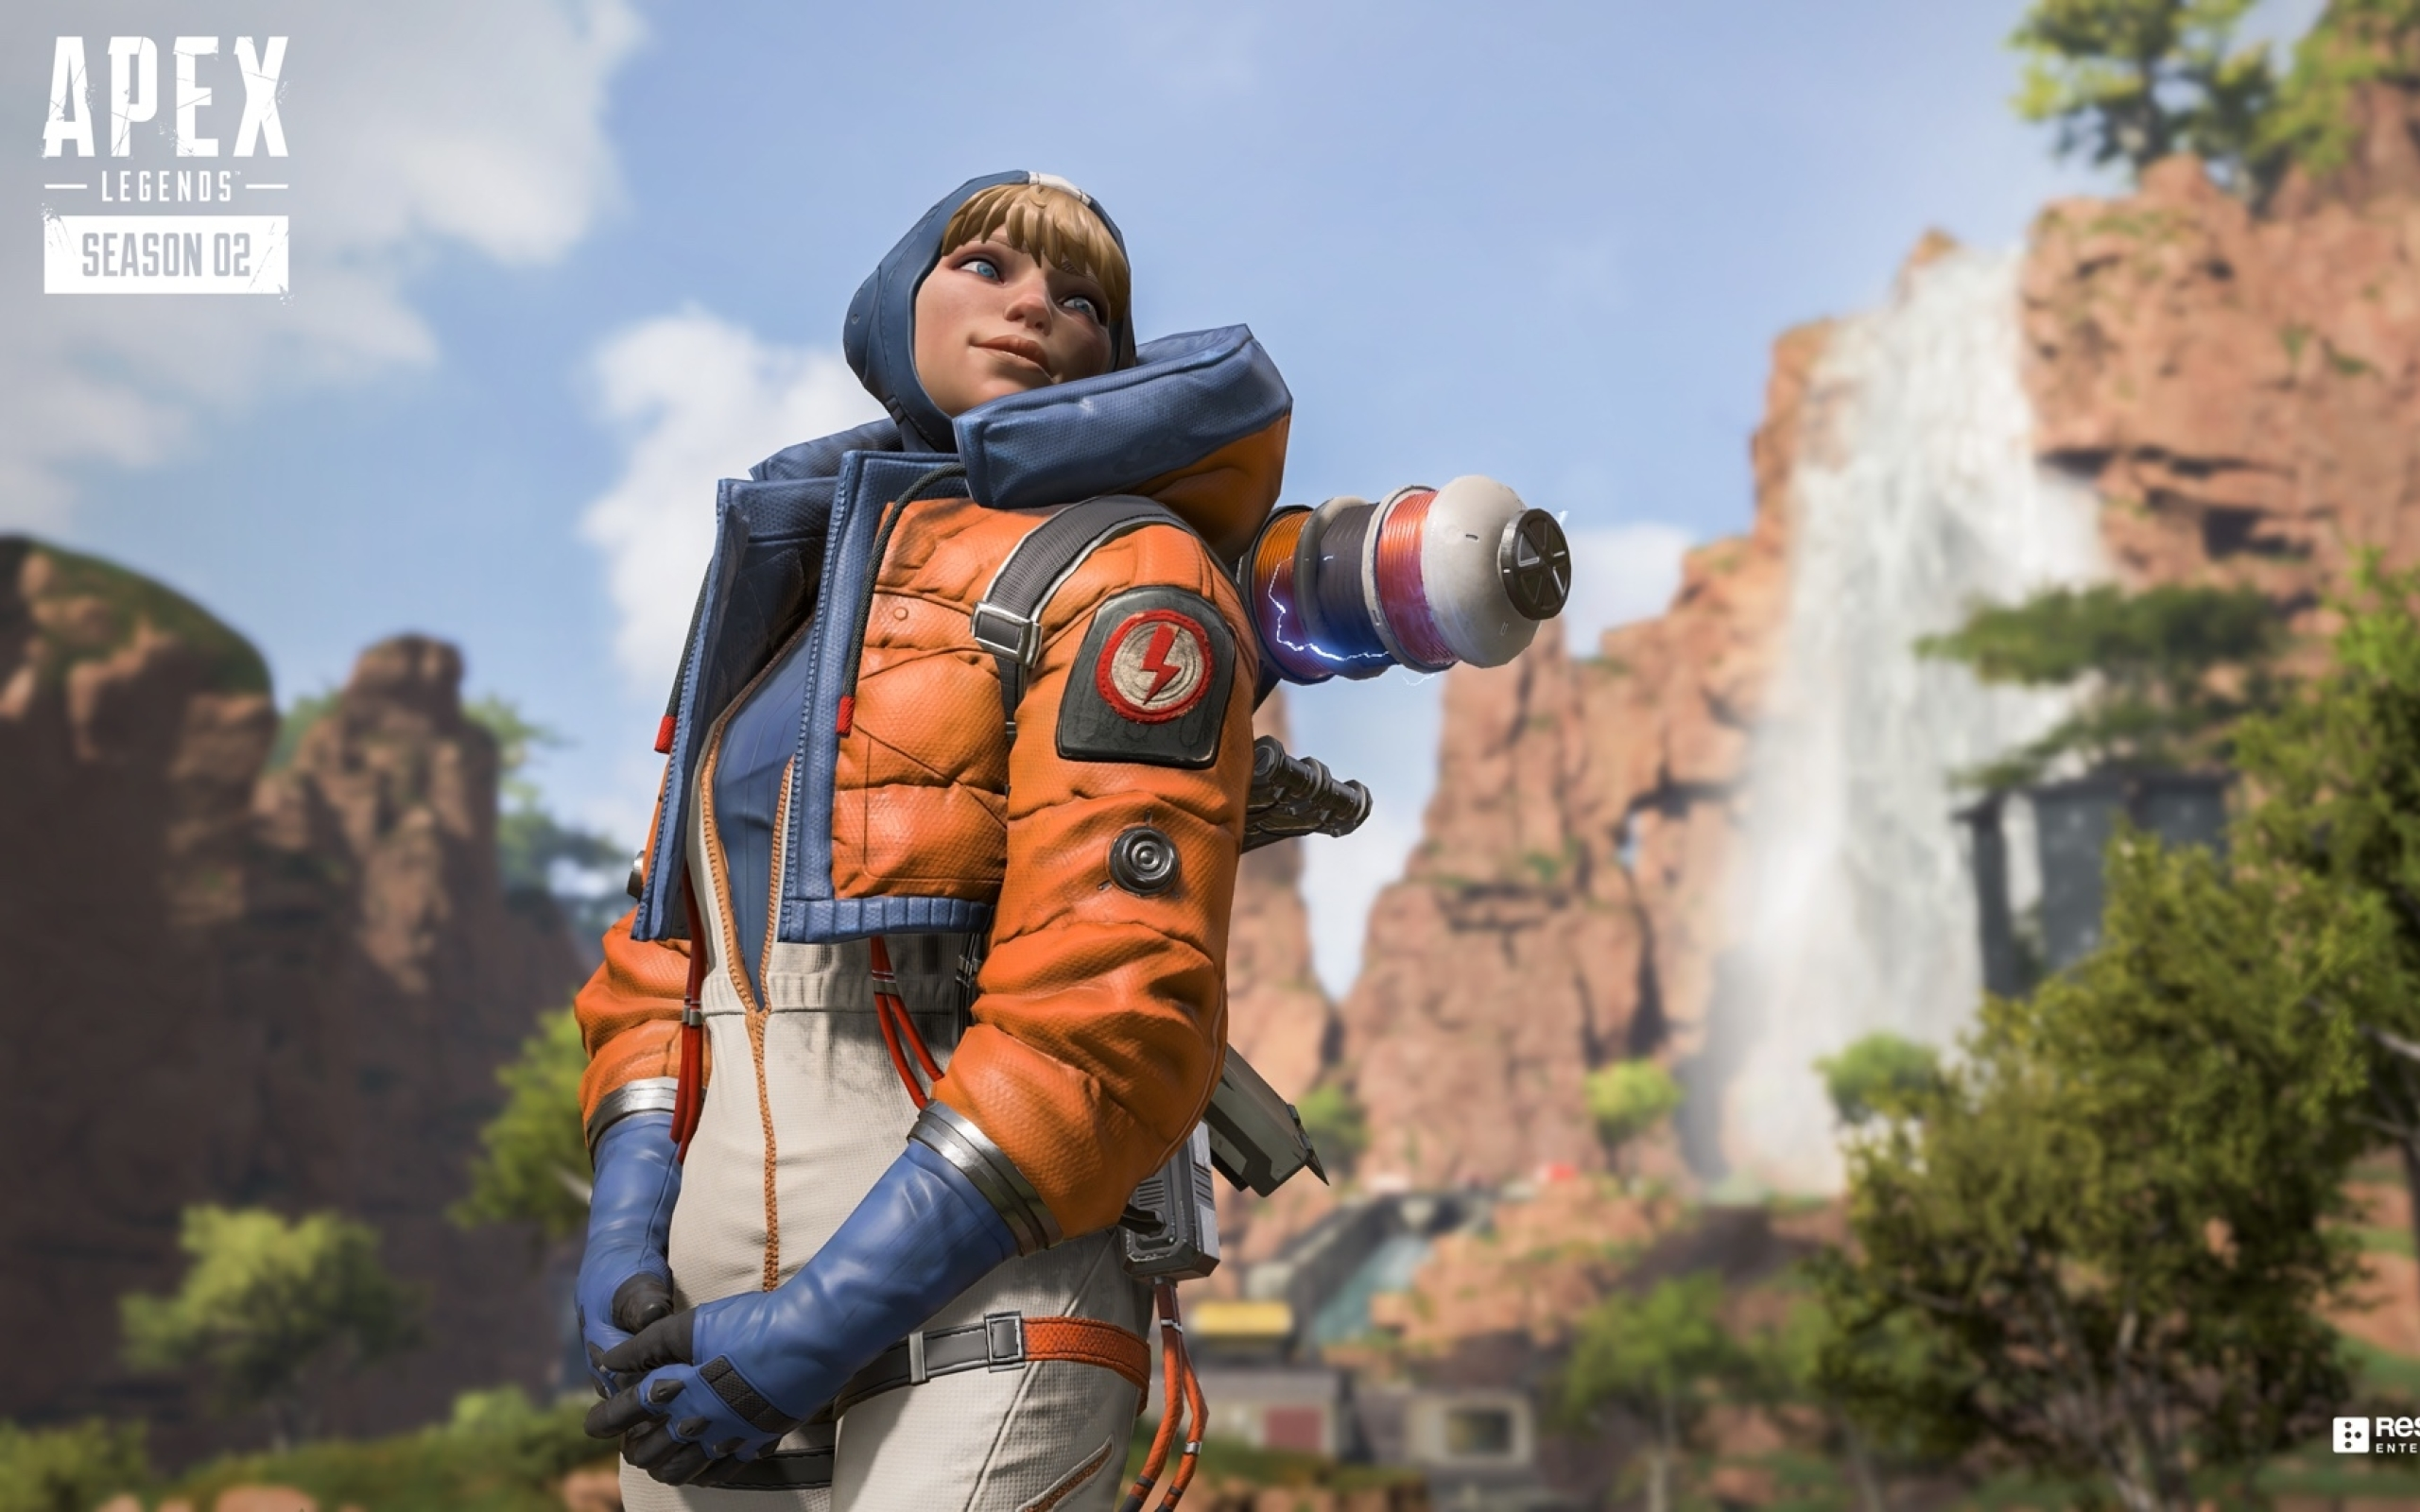 2560x1600 Apex Legends Mobile 2020 Game 2560x1600 Resolution 2560x1600